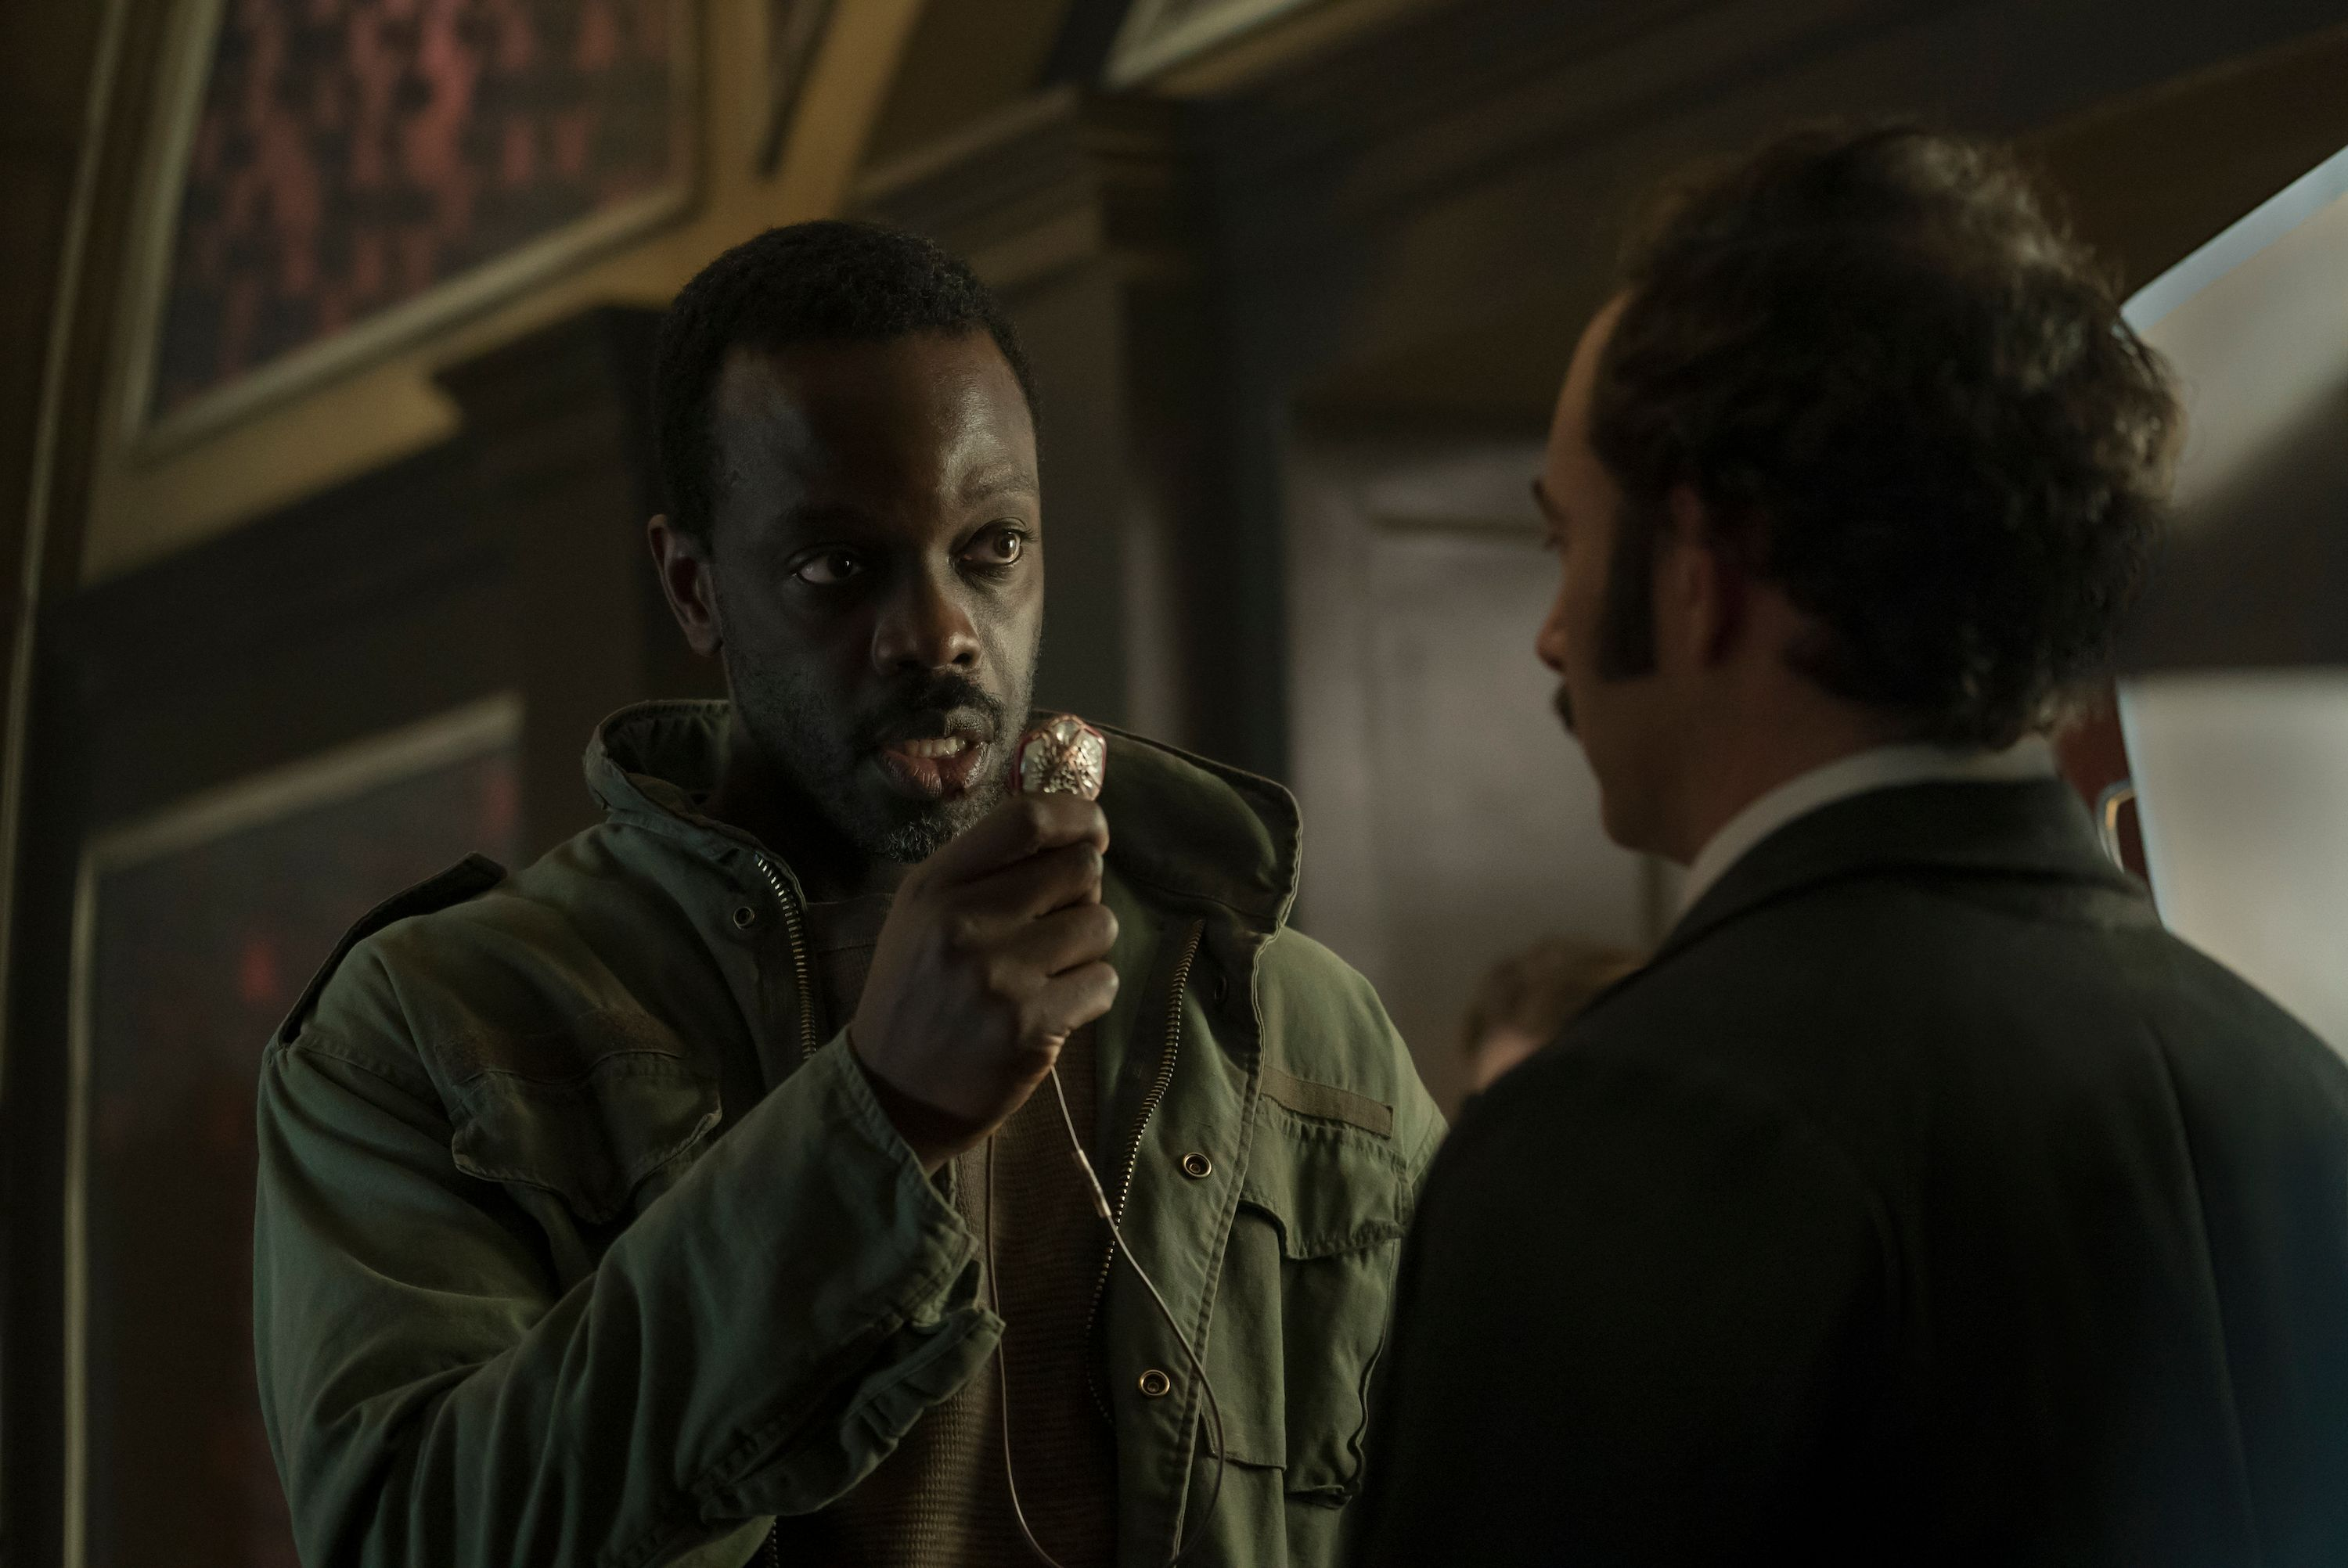 Altered Carbon Male Frontal altered carbon review: the ugly trends of sci-fi television